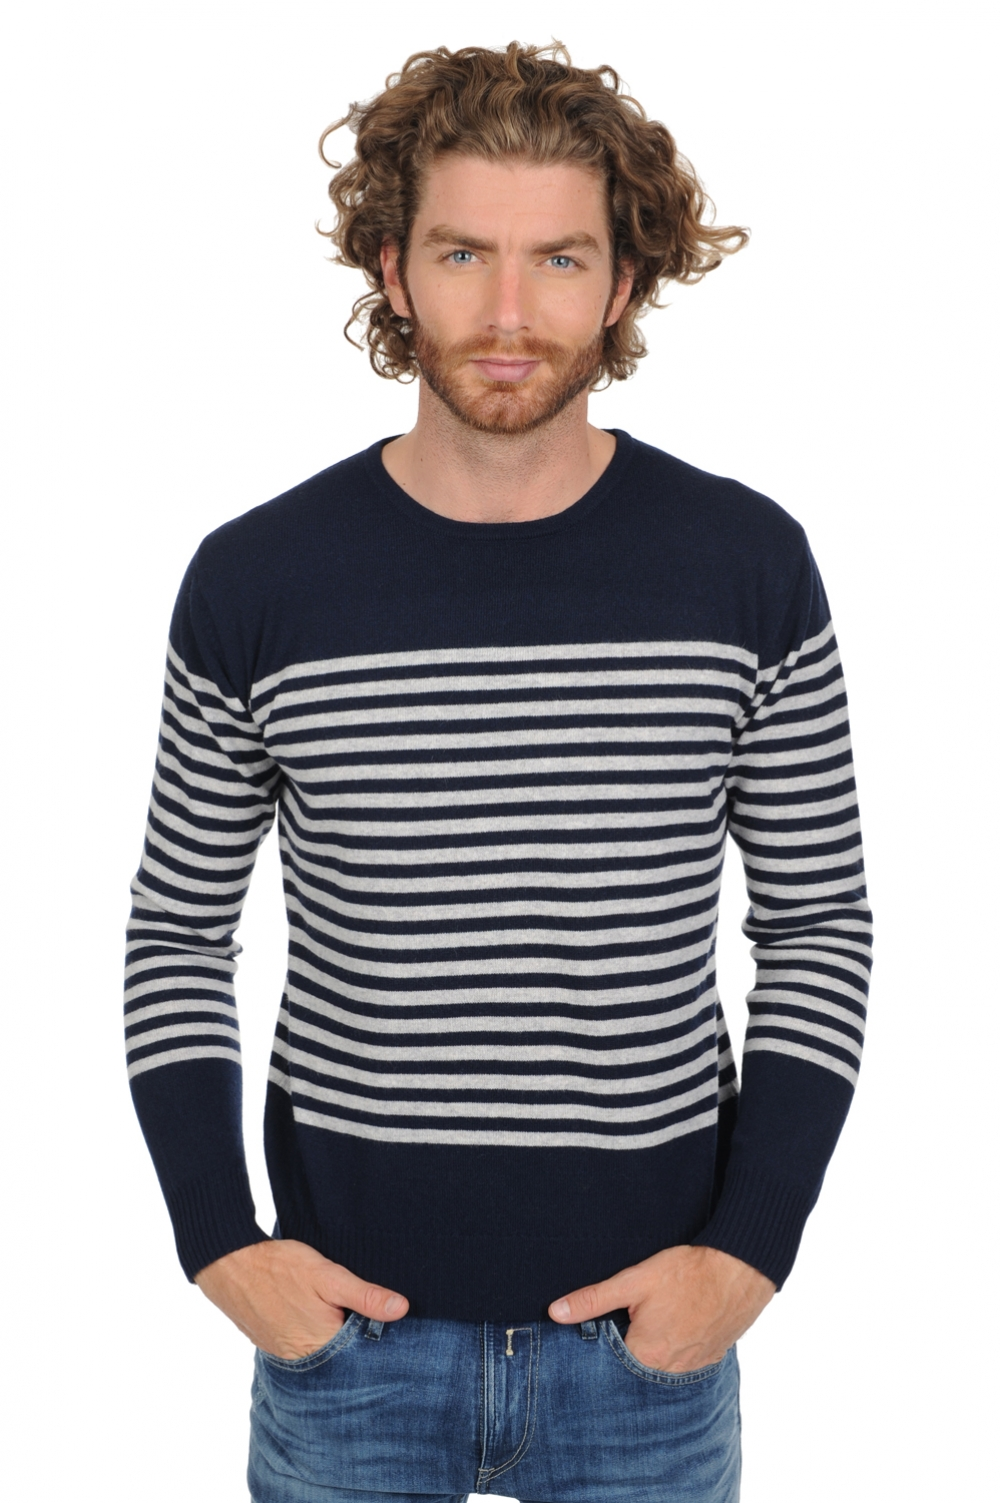 Cachemire pull homme col rond randy marine fonce flanelle chine xl